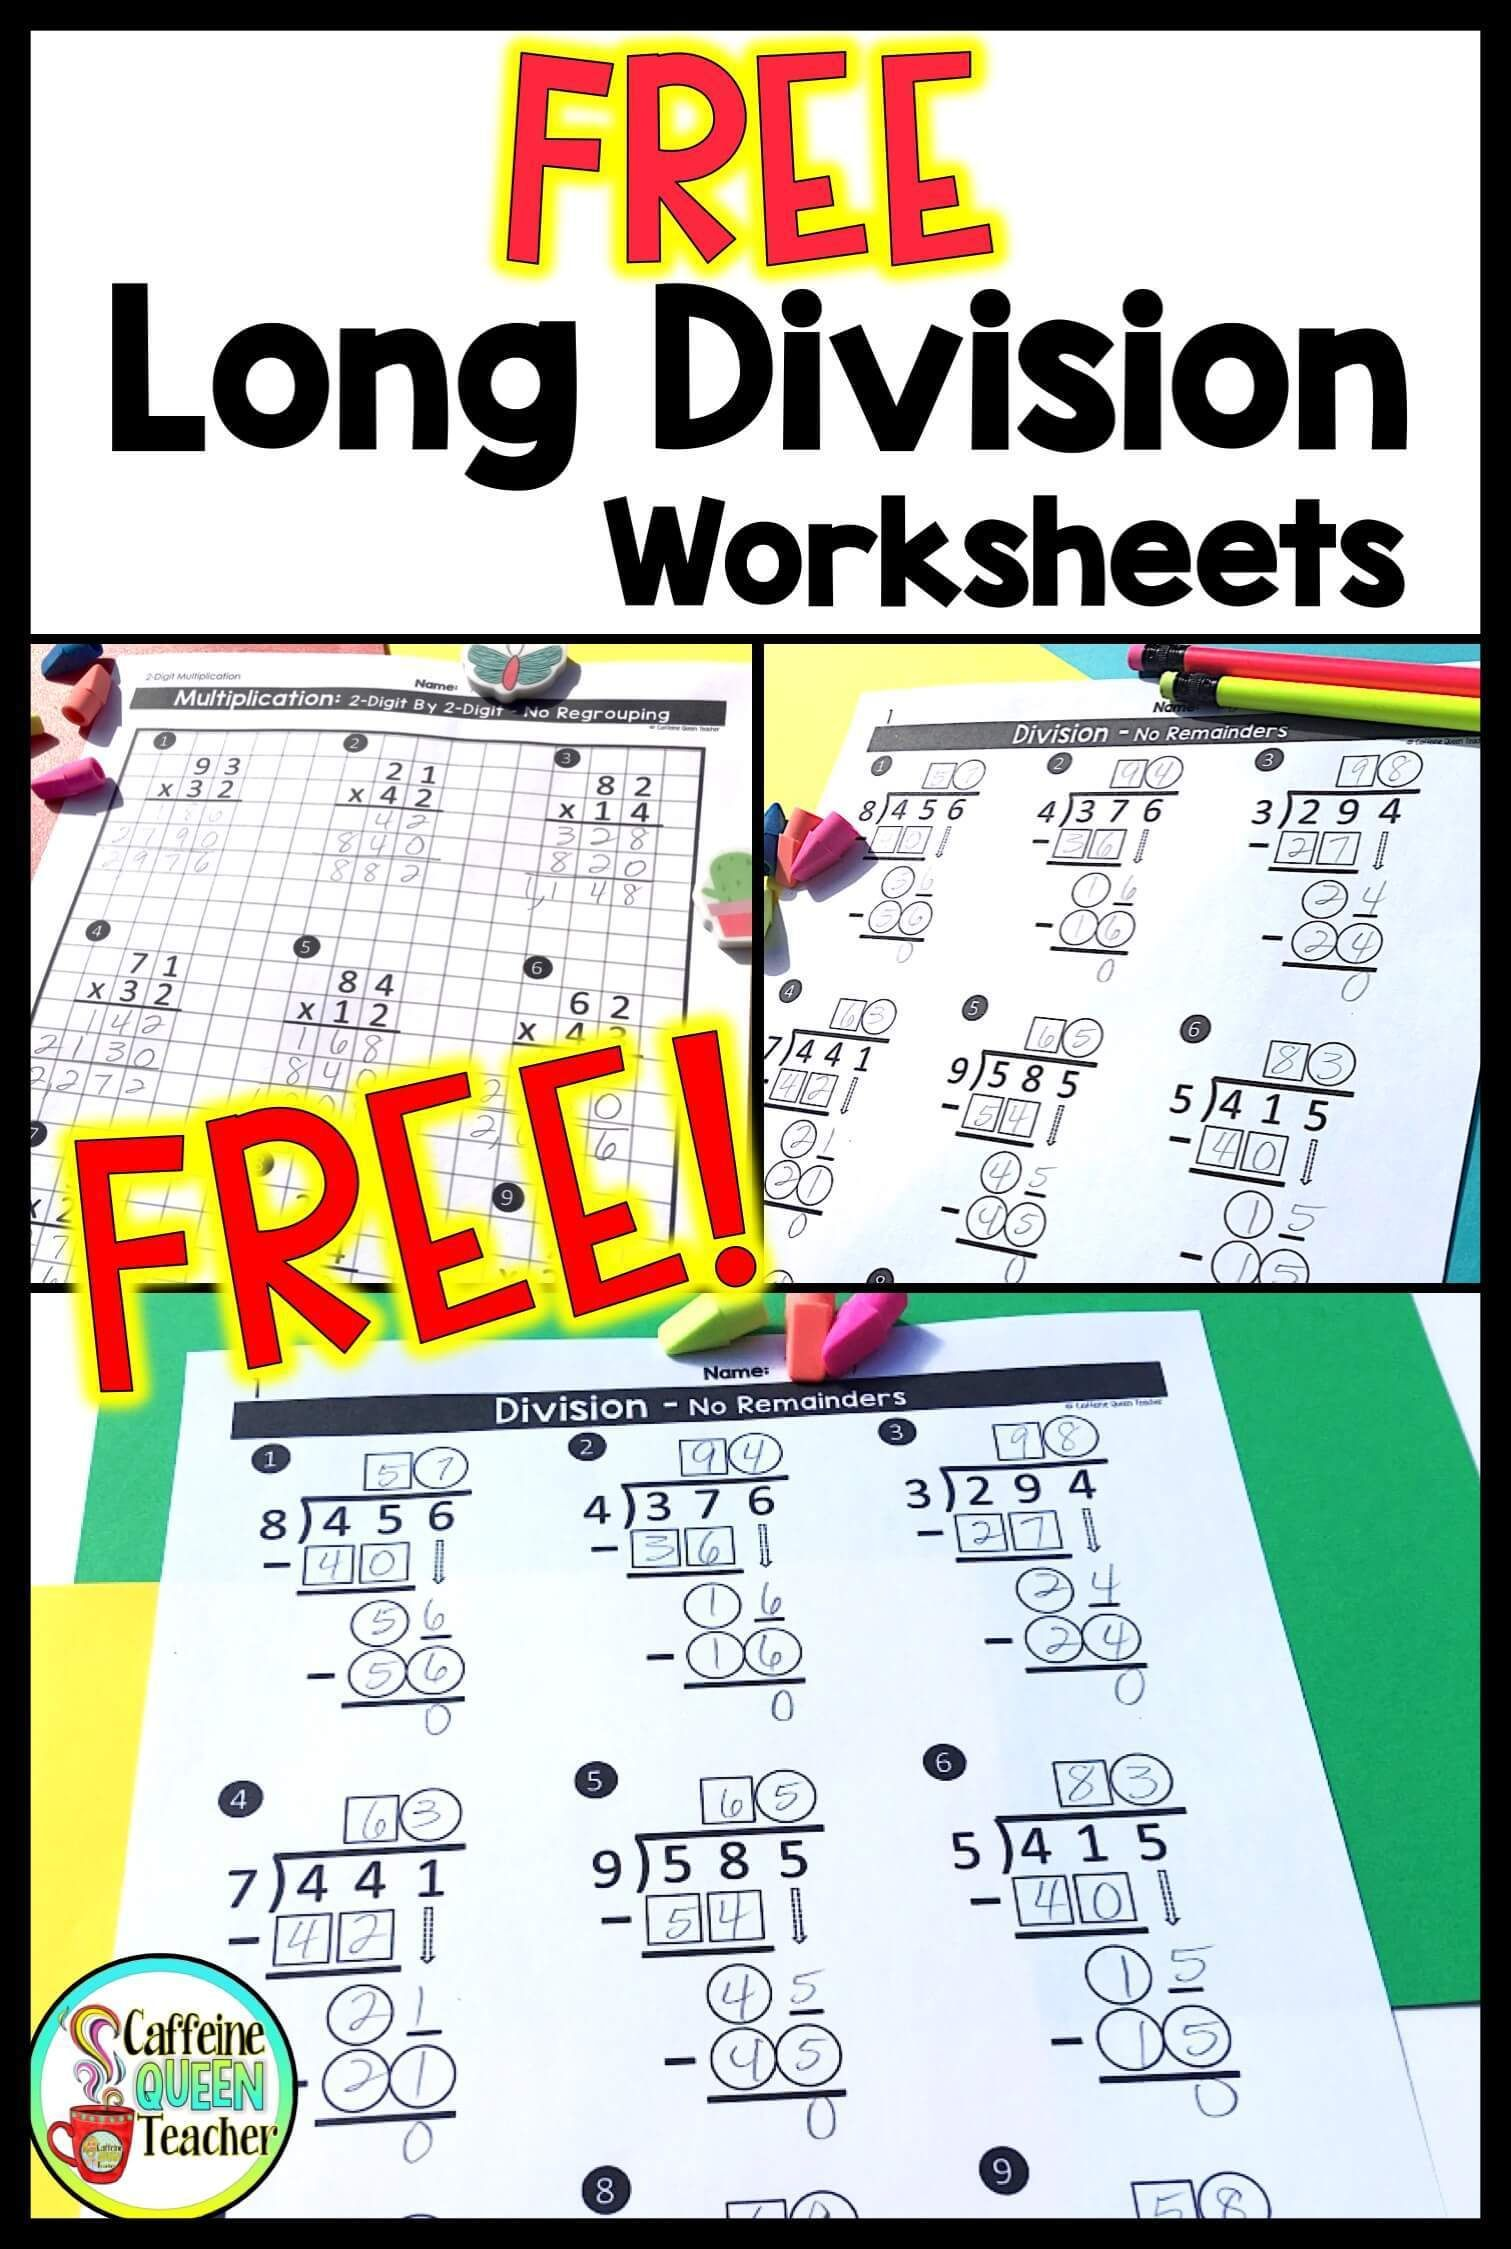 Differentiated Long Division Worksheets For Free Caffeine Queen Teacher Math Division Long Division Worksheets Division Worksheets